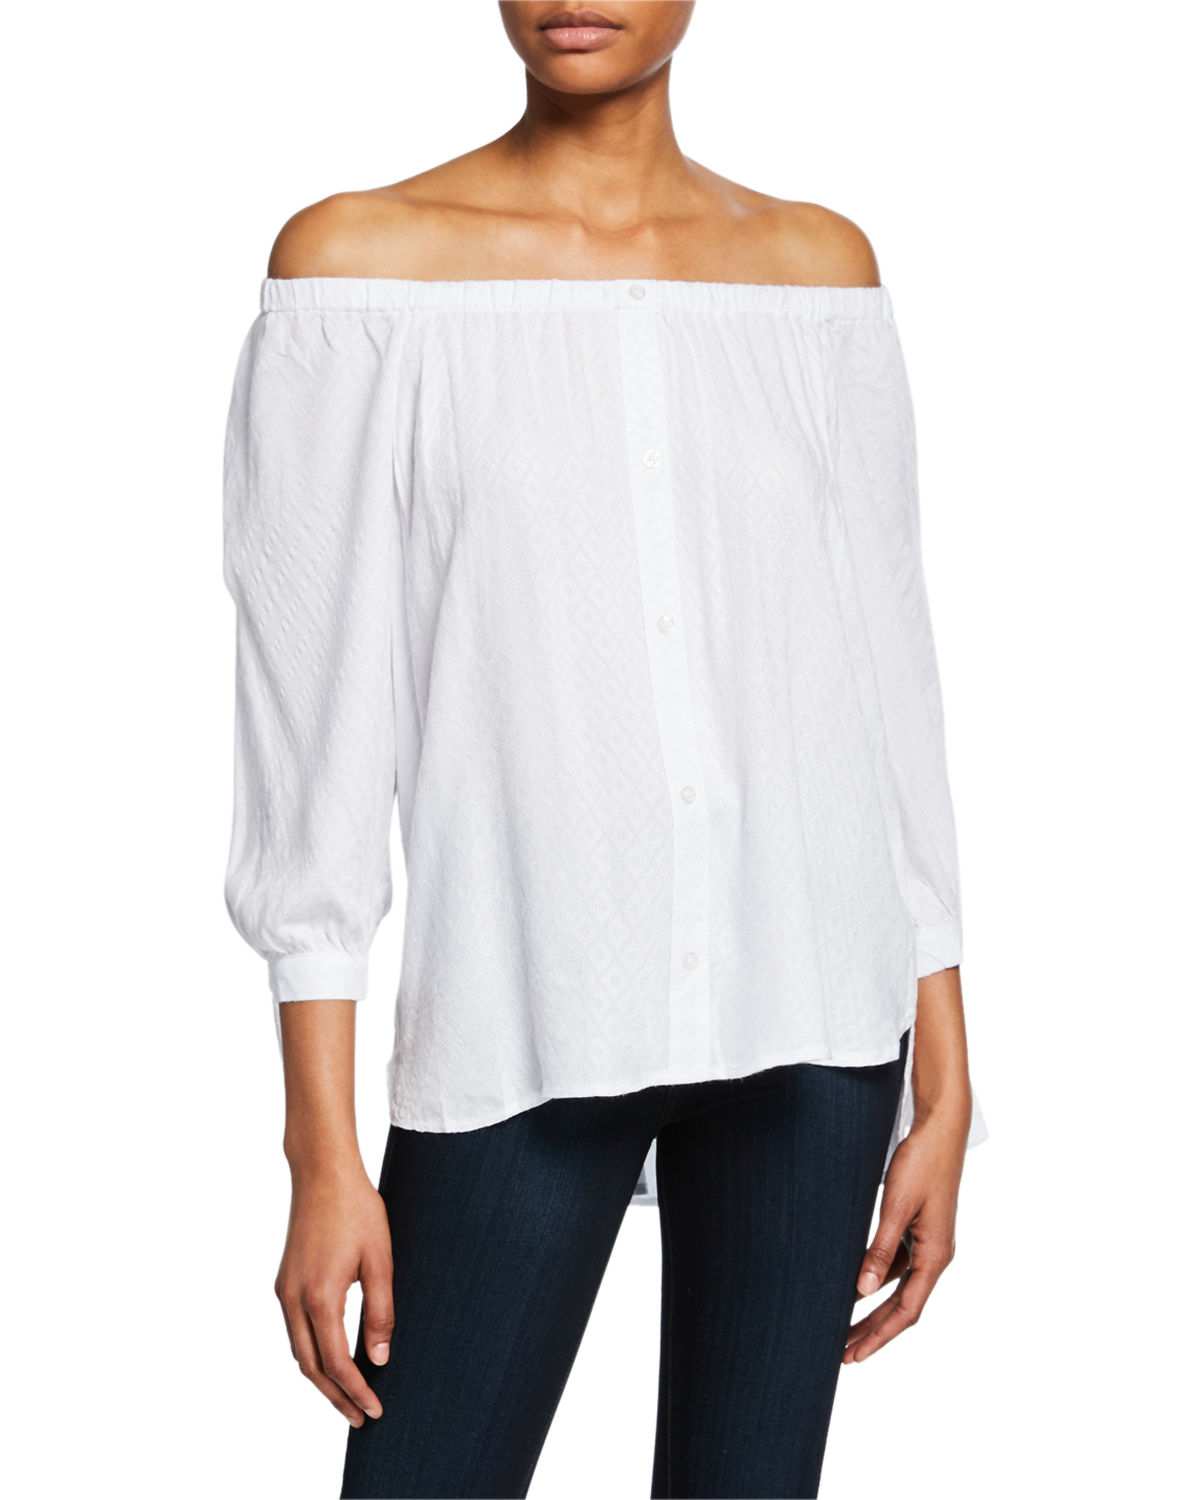 Off the Shoulder Tie Cuff High Low Top